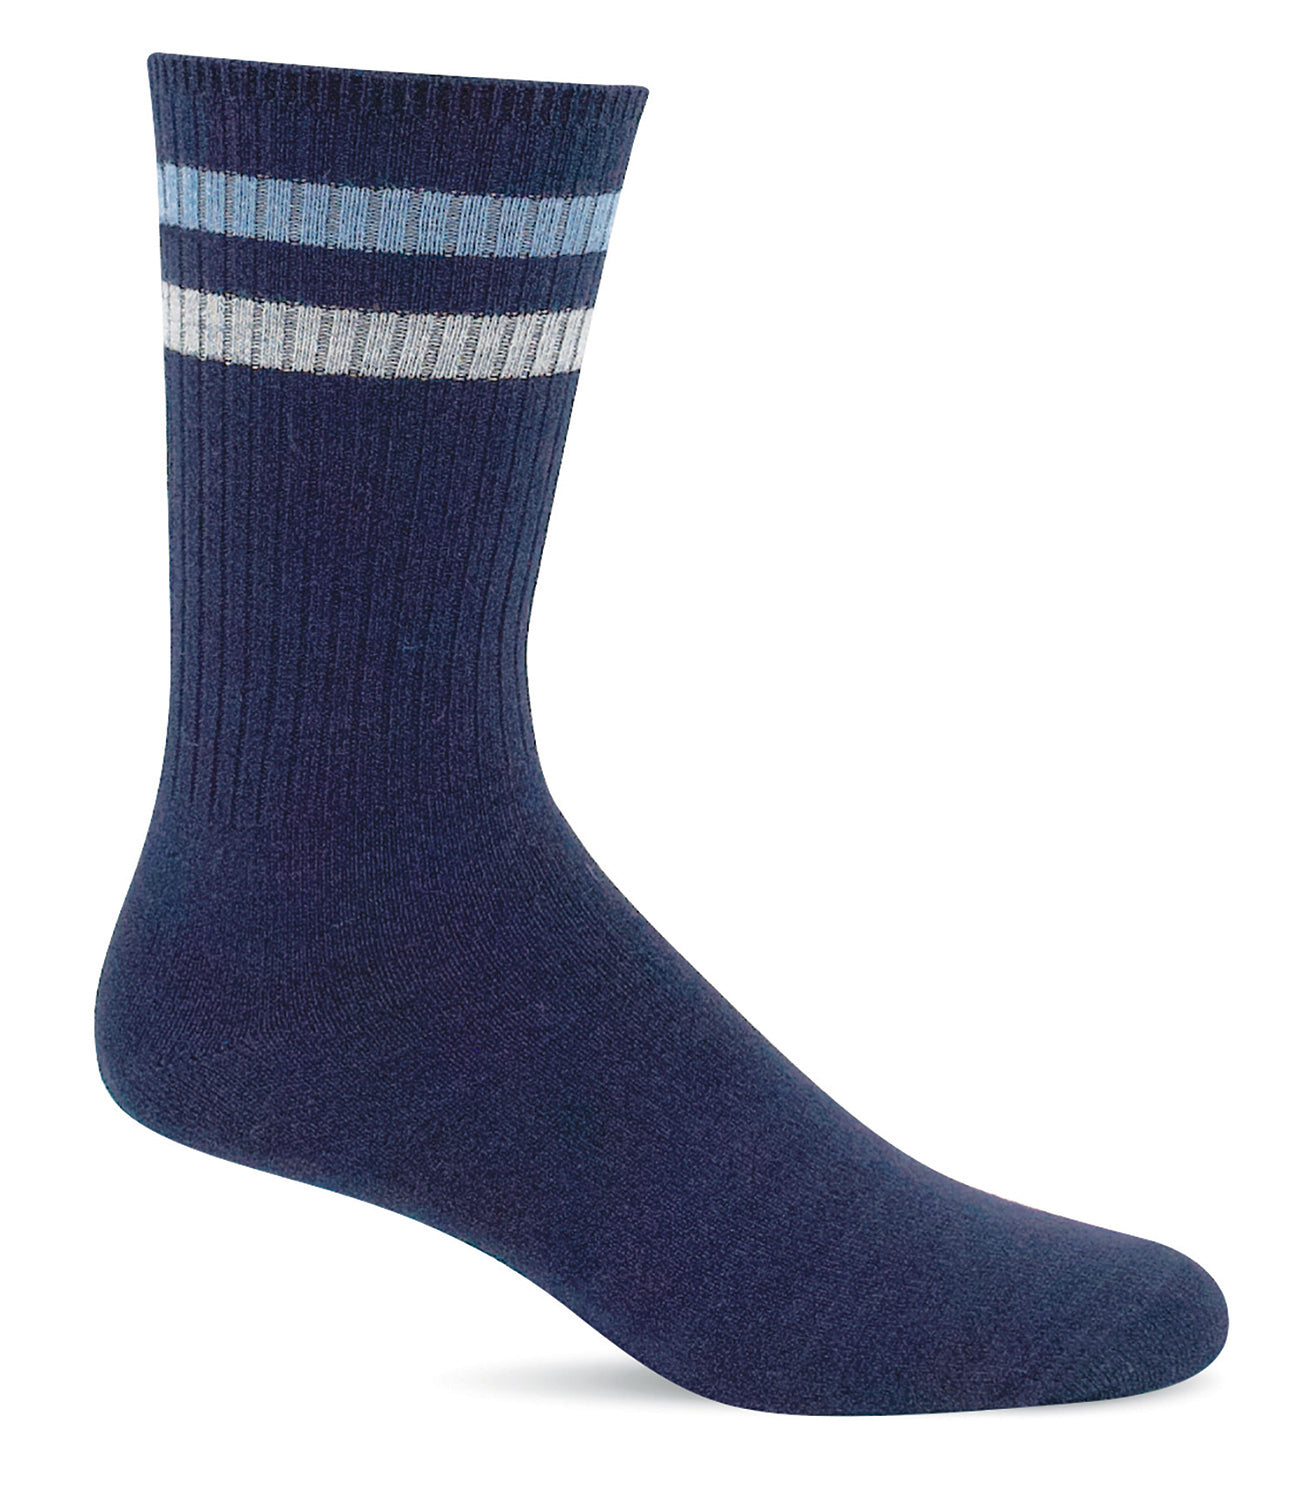 Tournament - Navy Essential Comfort